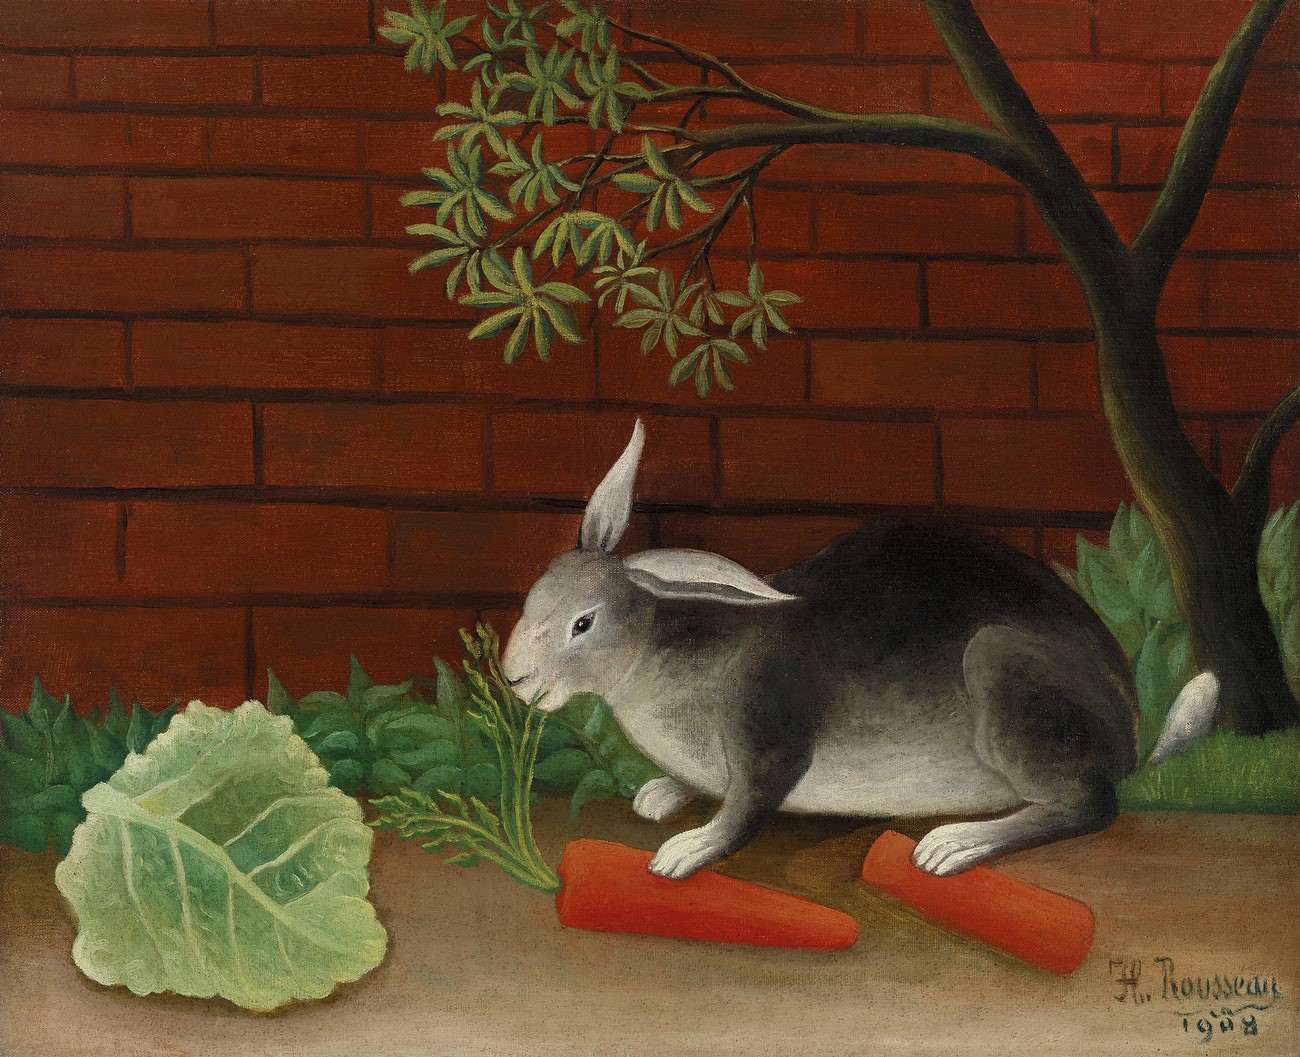 A painting of a gray bunny rabbit next to a red brick wall, chewing on carrot leaves with a piece of lettuce nearby.